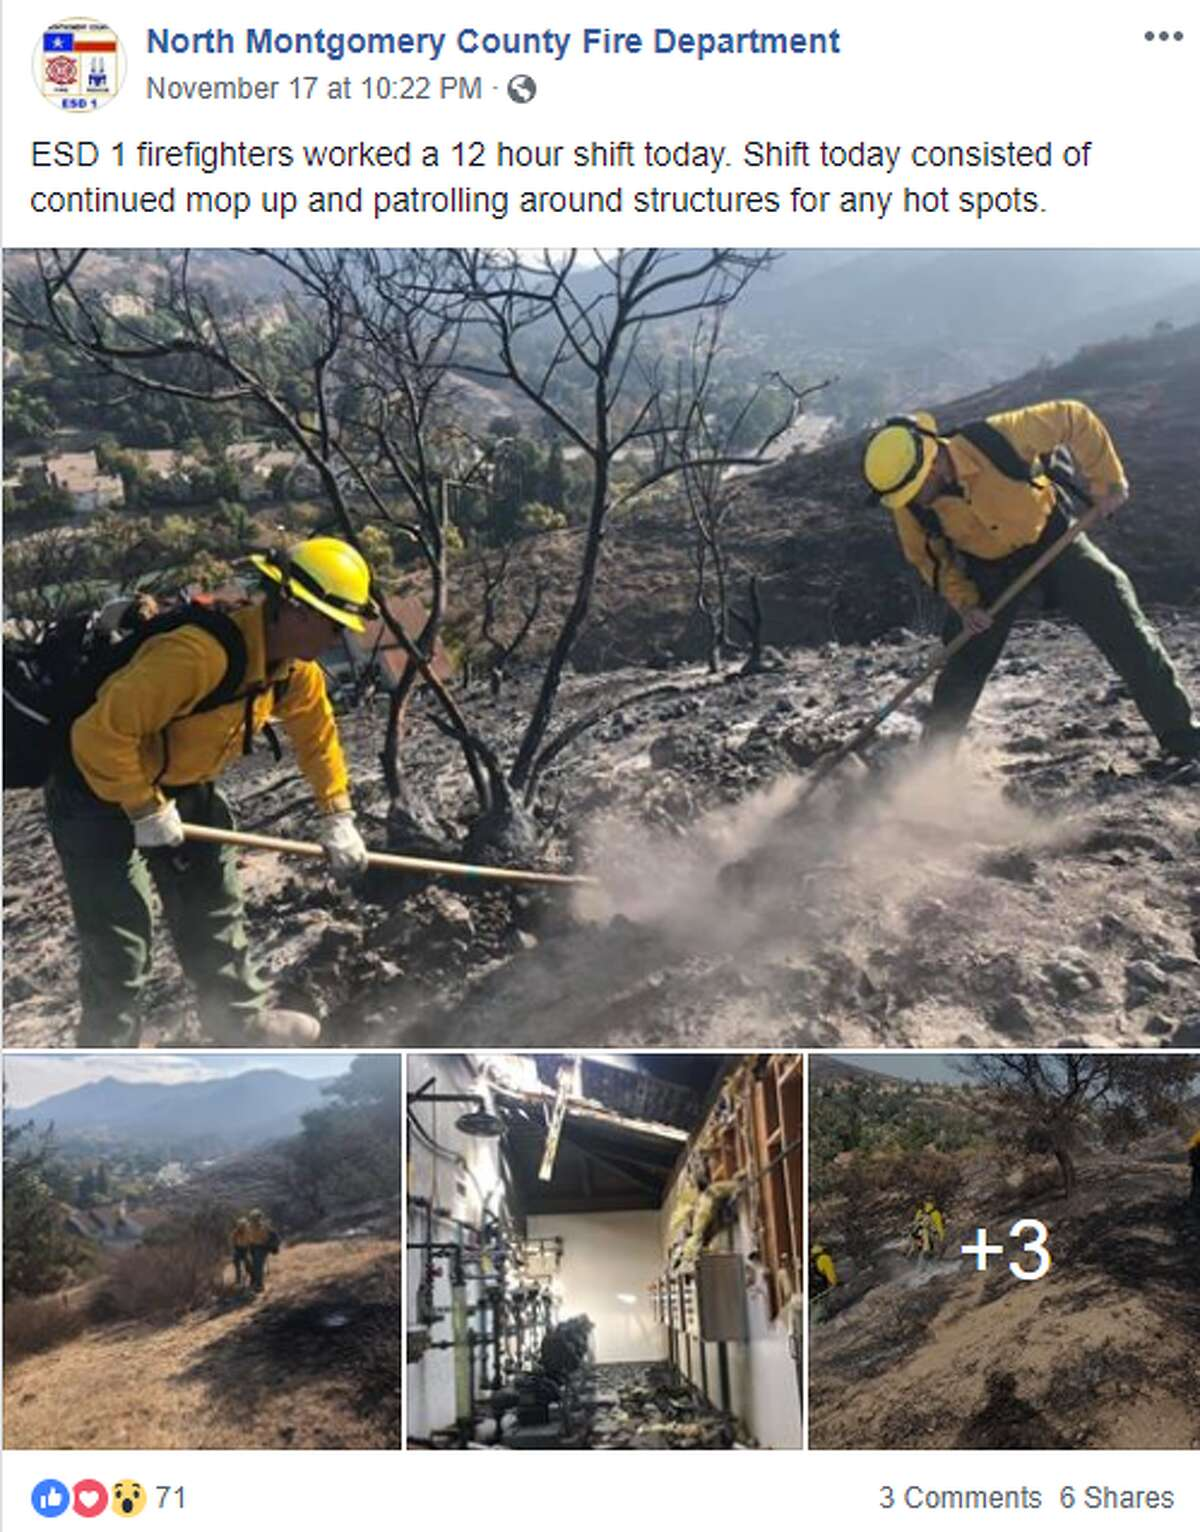 Multiple Texas fire departments have deployed to help battle the deadly wildfires in California. North Montgomery County firefighters said they had most recently been helping put out hot spots. They also assisted local authorities with community outreach initiatives in hard-hit areas, according to their Facebook page.